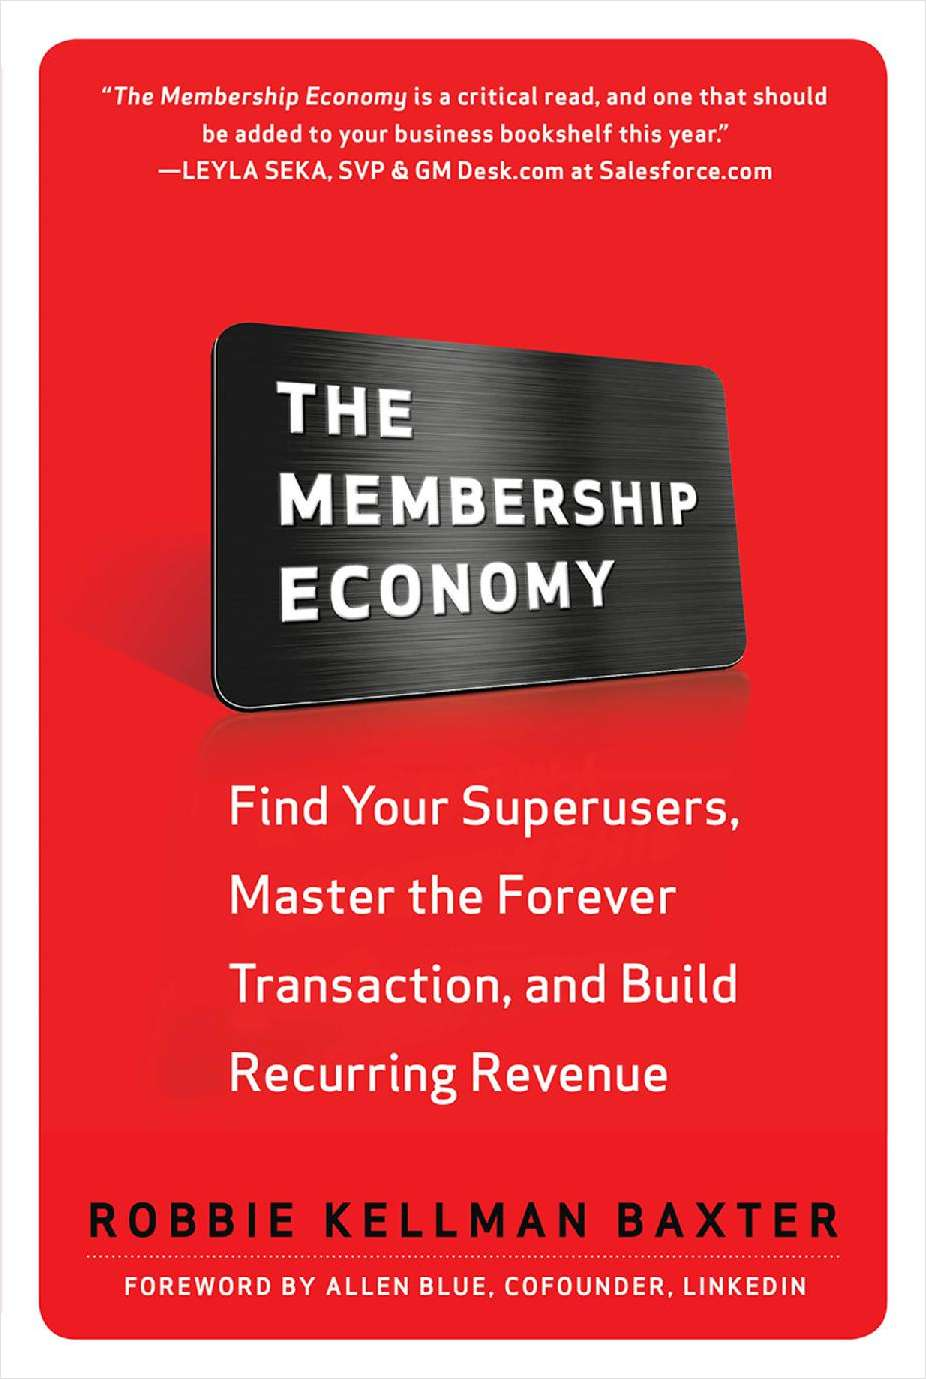 The Membership Economy: Find Your Superusers, Master the Forever Transaction, and Build Recurring Revenue (An Excerpt)